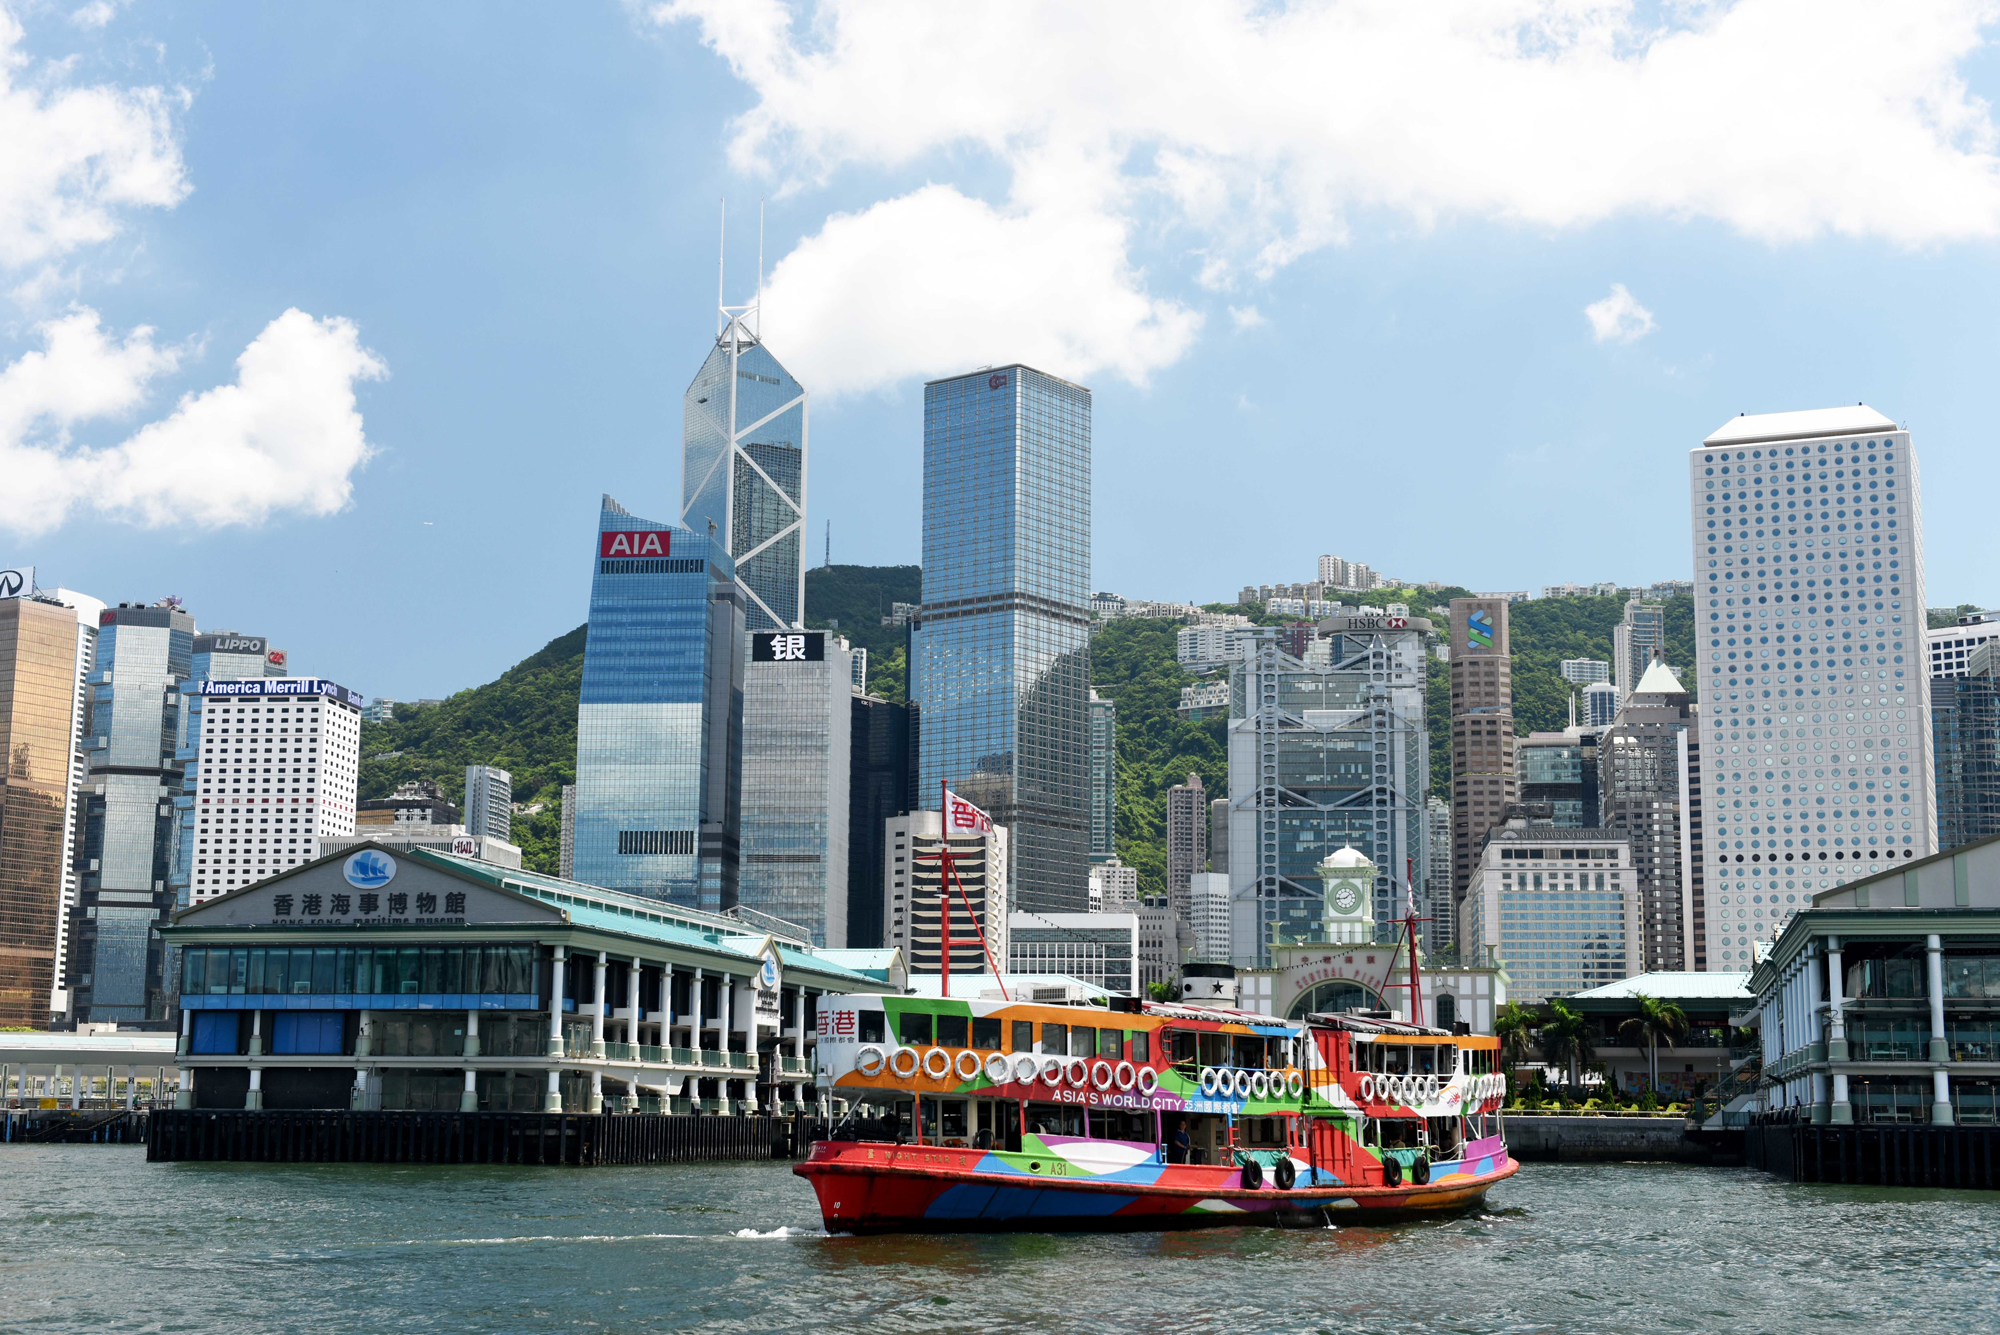 A view of Hong Kong Harbor showing the Kowloon-HK Ferry (Photo courtesy Information Services Department of HKSARG)